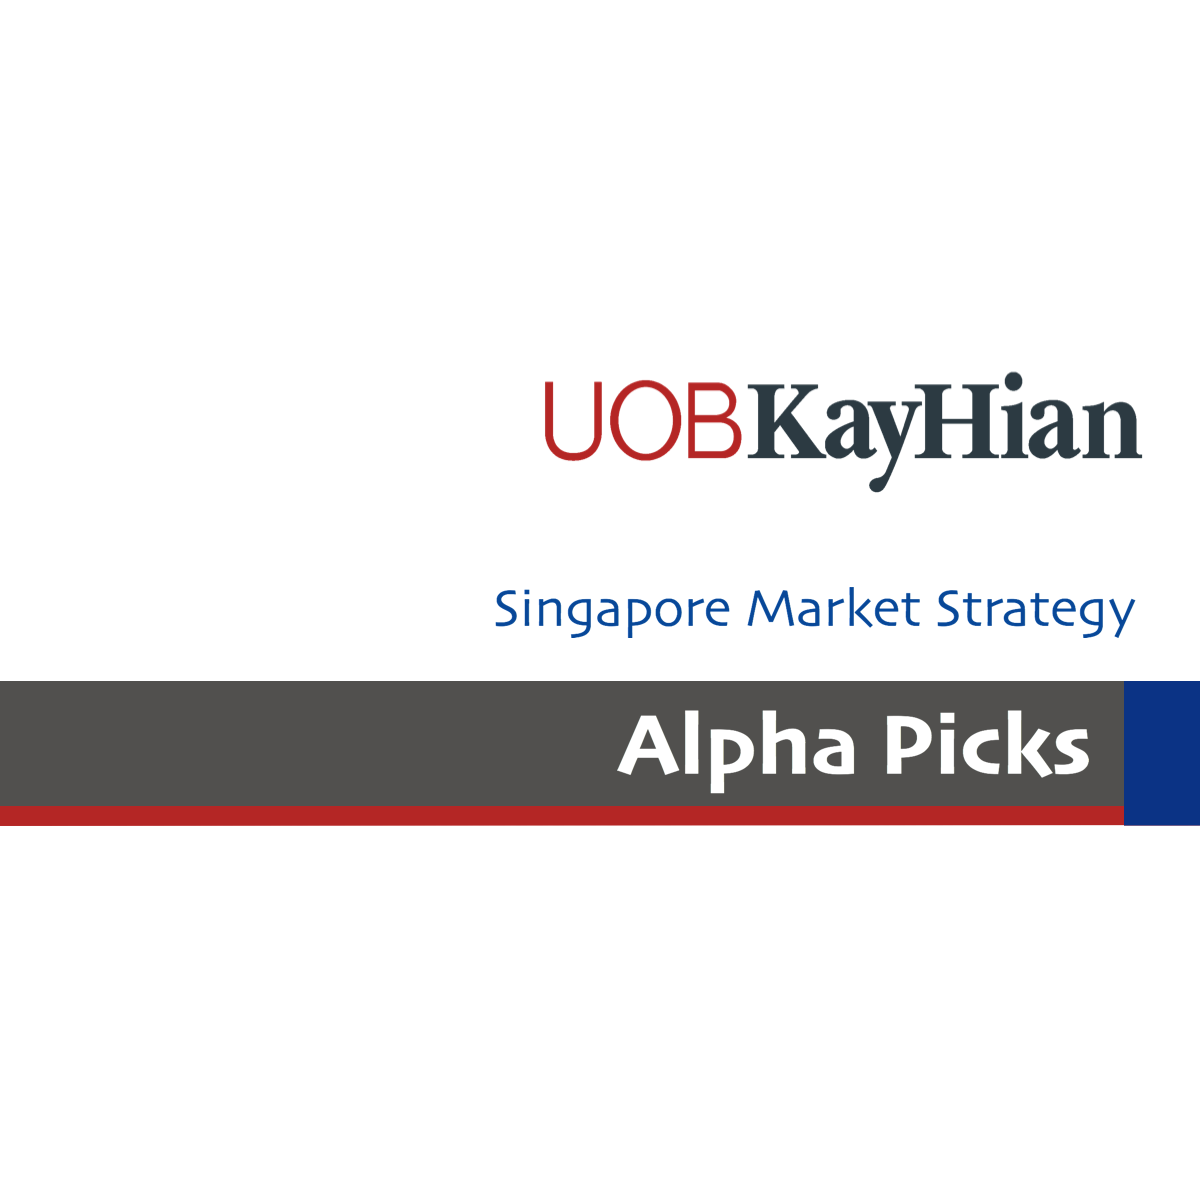 Alpha Picks - UOB Kay Hian 2017-04-03: Allocating For A New Quarter